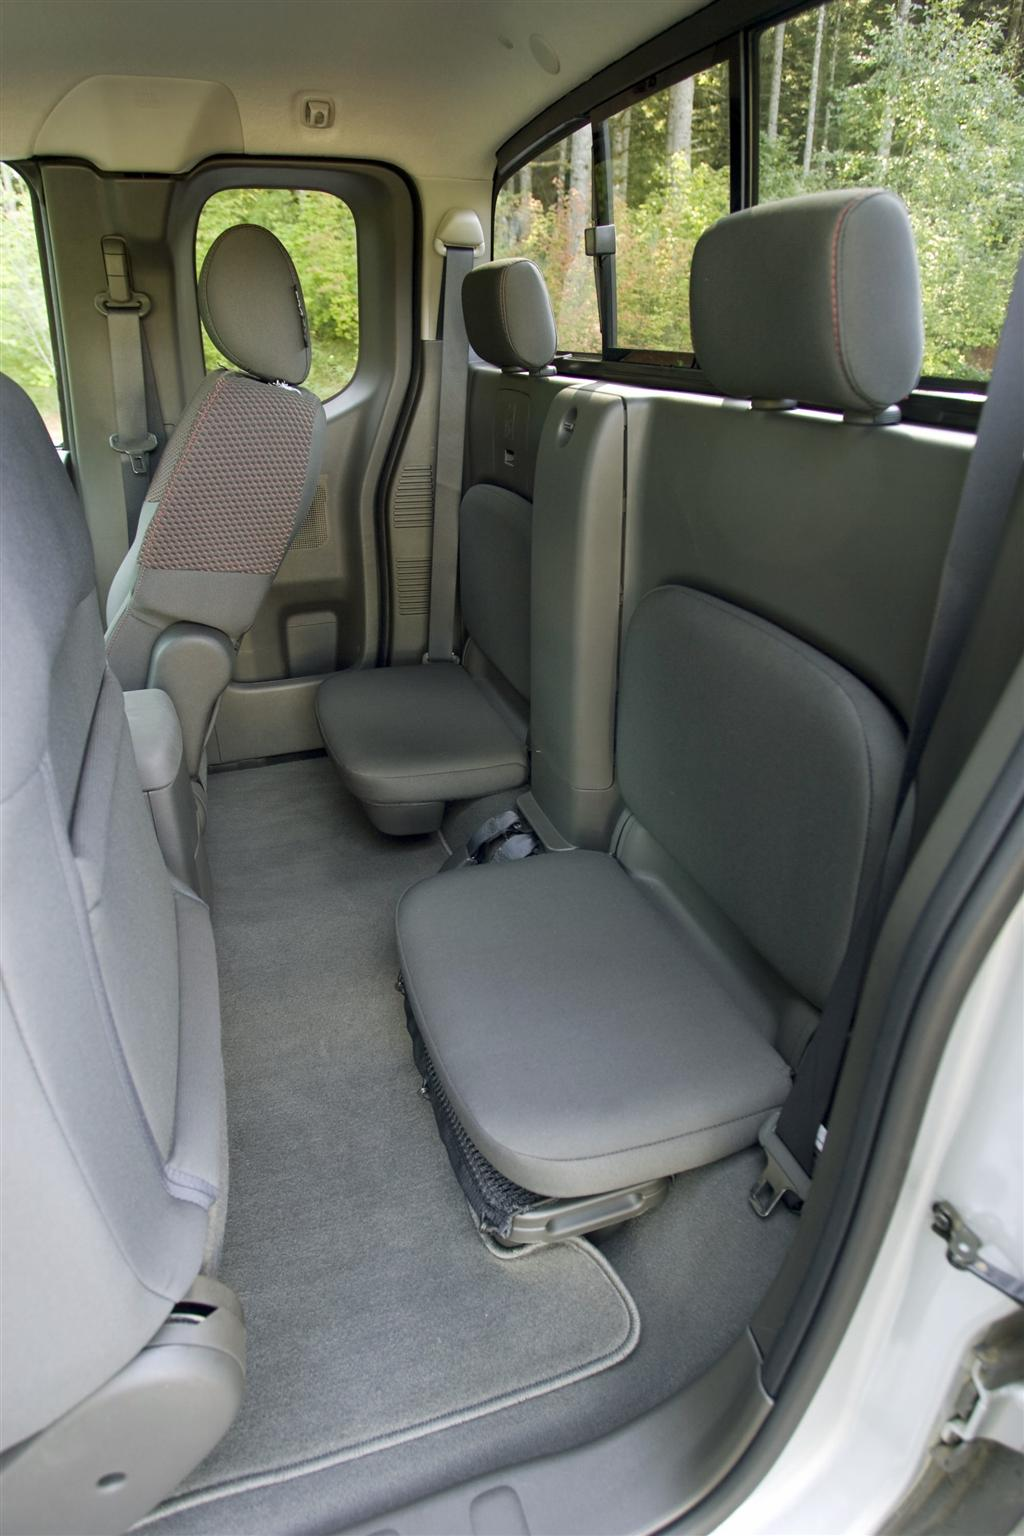 1998 nissan frontier king cab interior. Black Bedroom Furniture Sets. Home Design Ideas